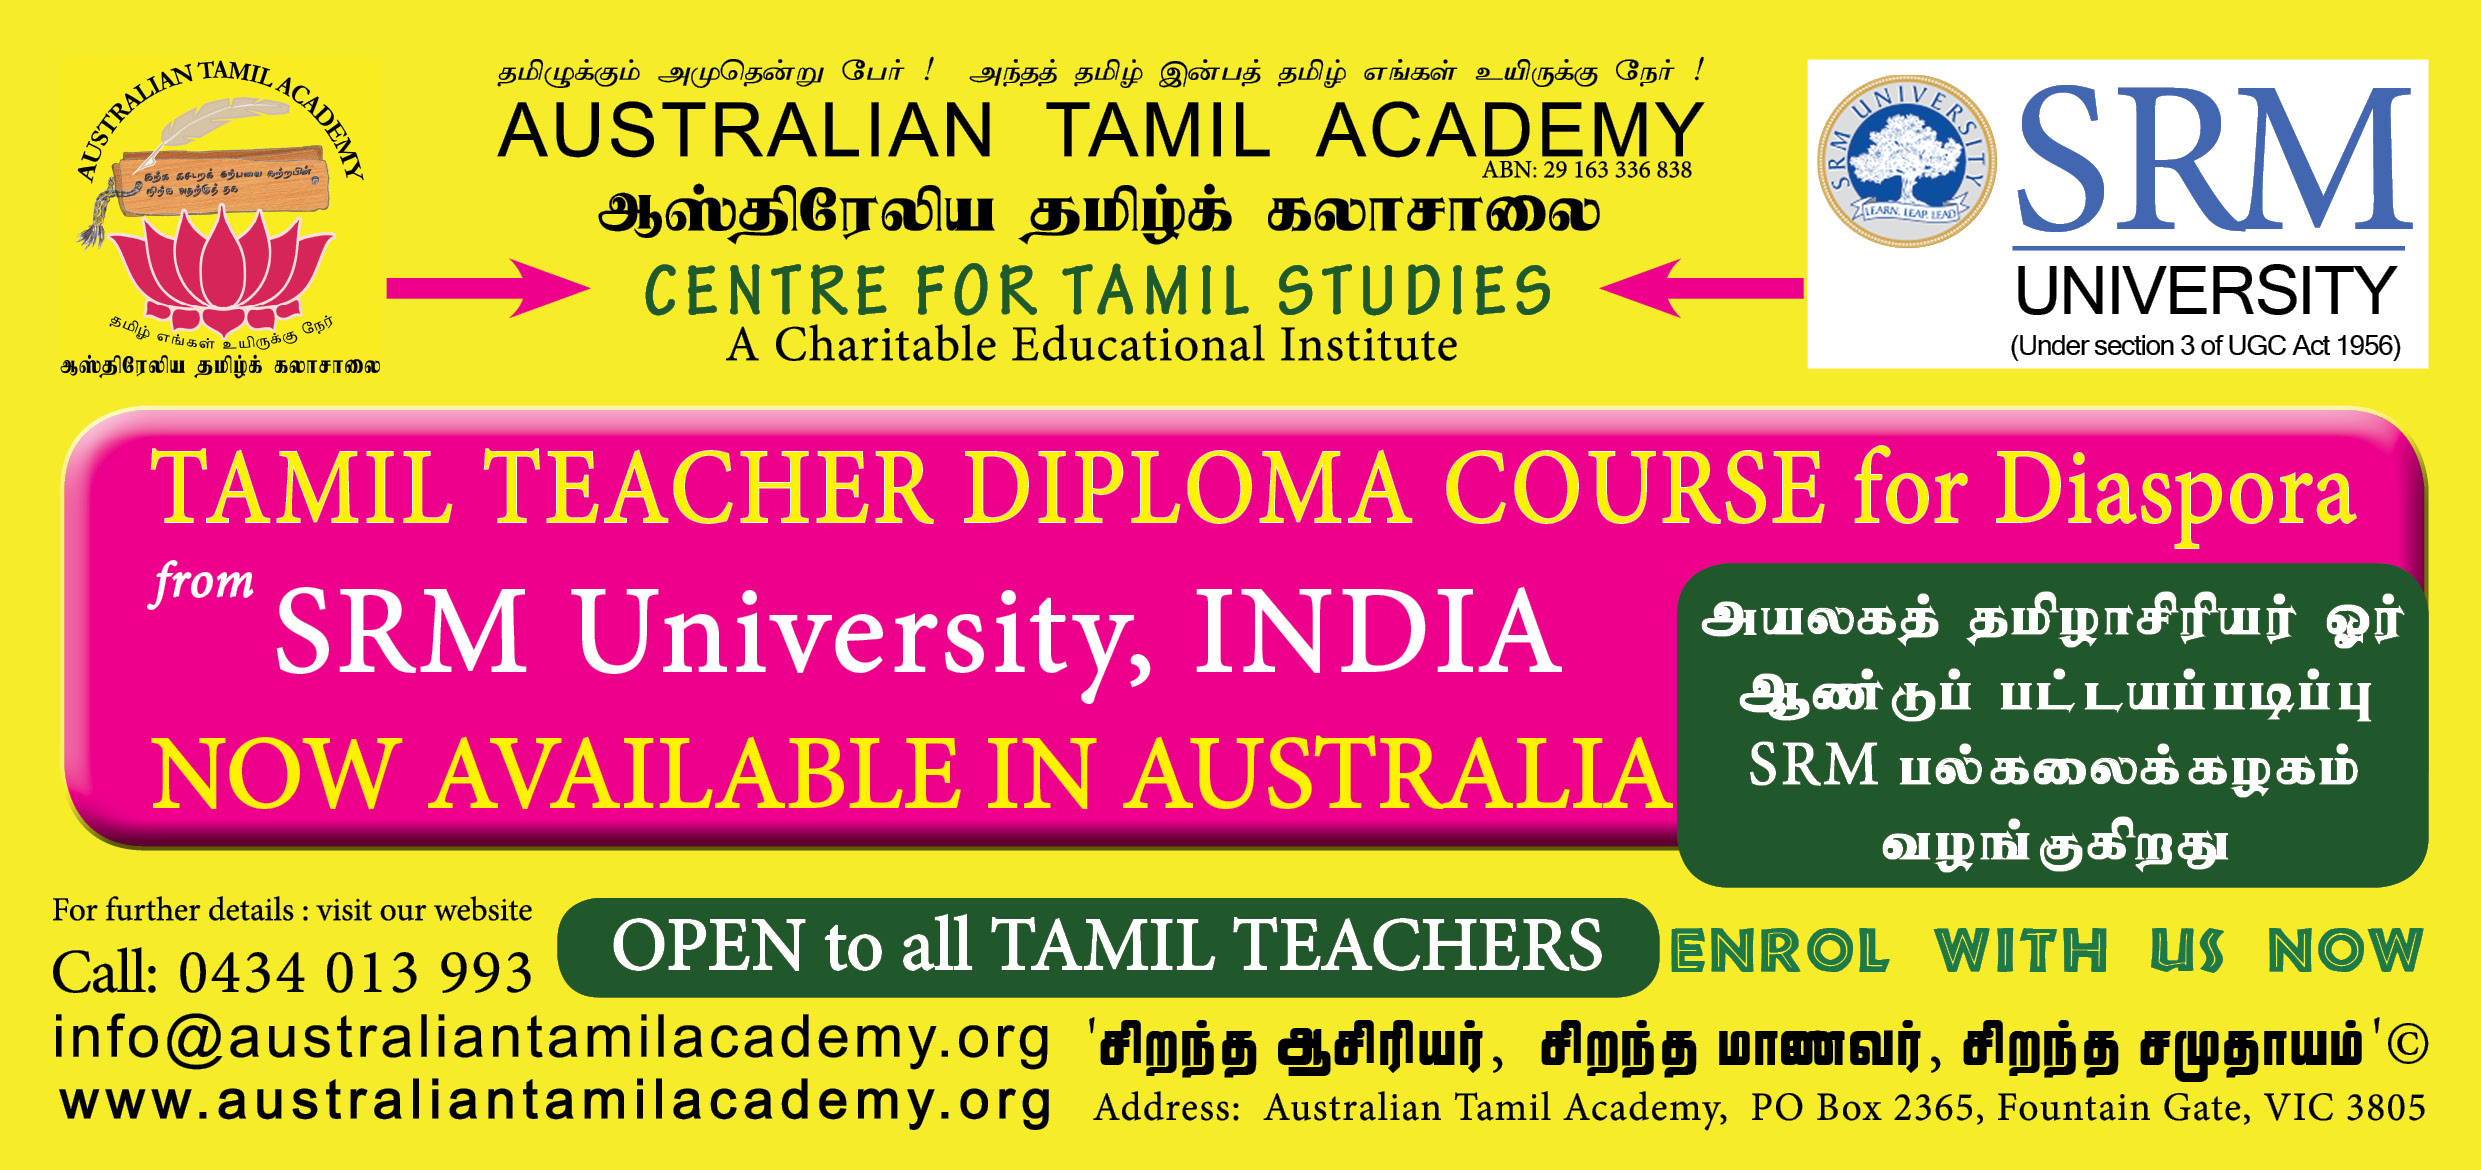 Diaspora Tamil Teacher Training Program for Australia